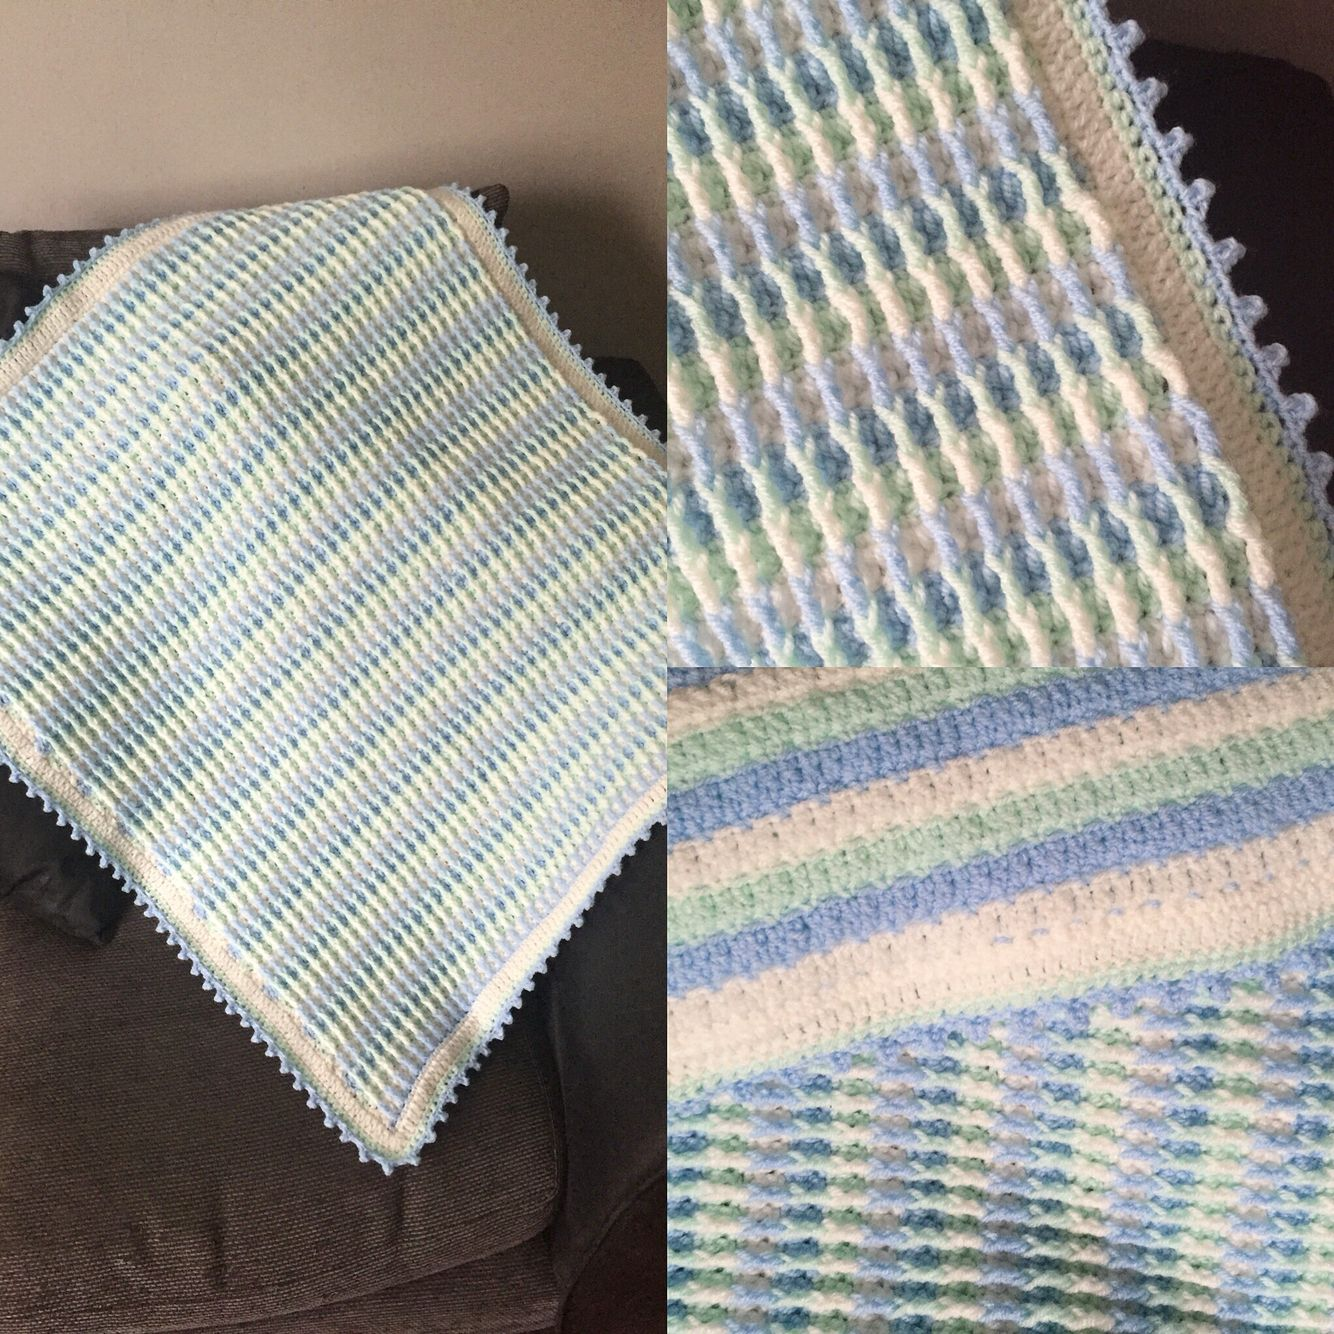 Crochet Patterns For Thick Blankets : Crochet Textured & Thick Baby Blanket using the Rainbow ...